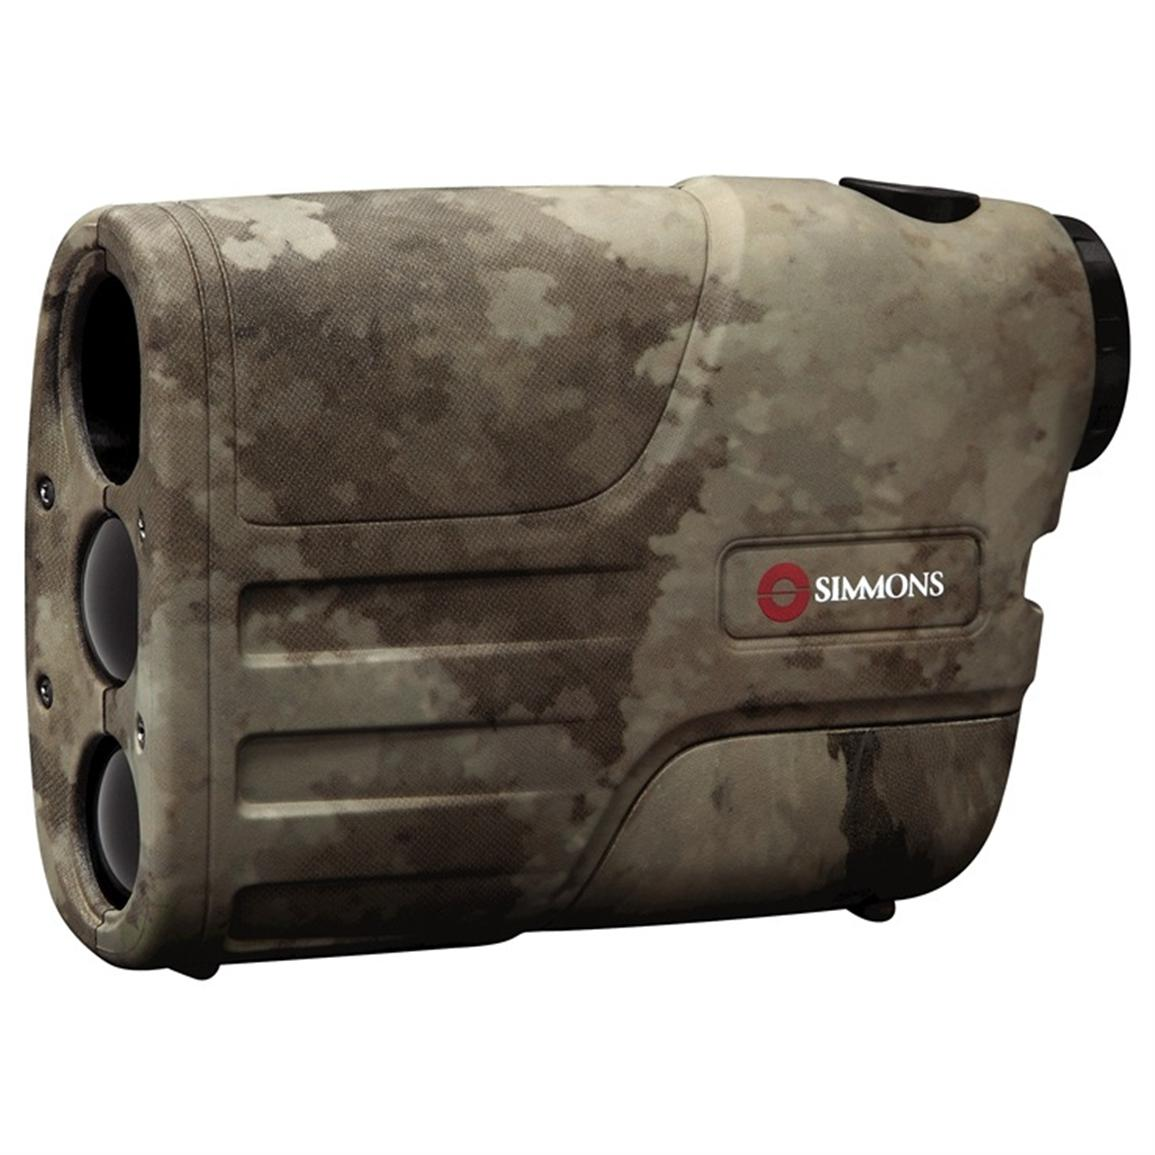 Simmons® 4x20 mm LRF600 Hunting Laser Rangefinder, Camo